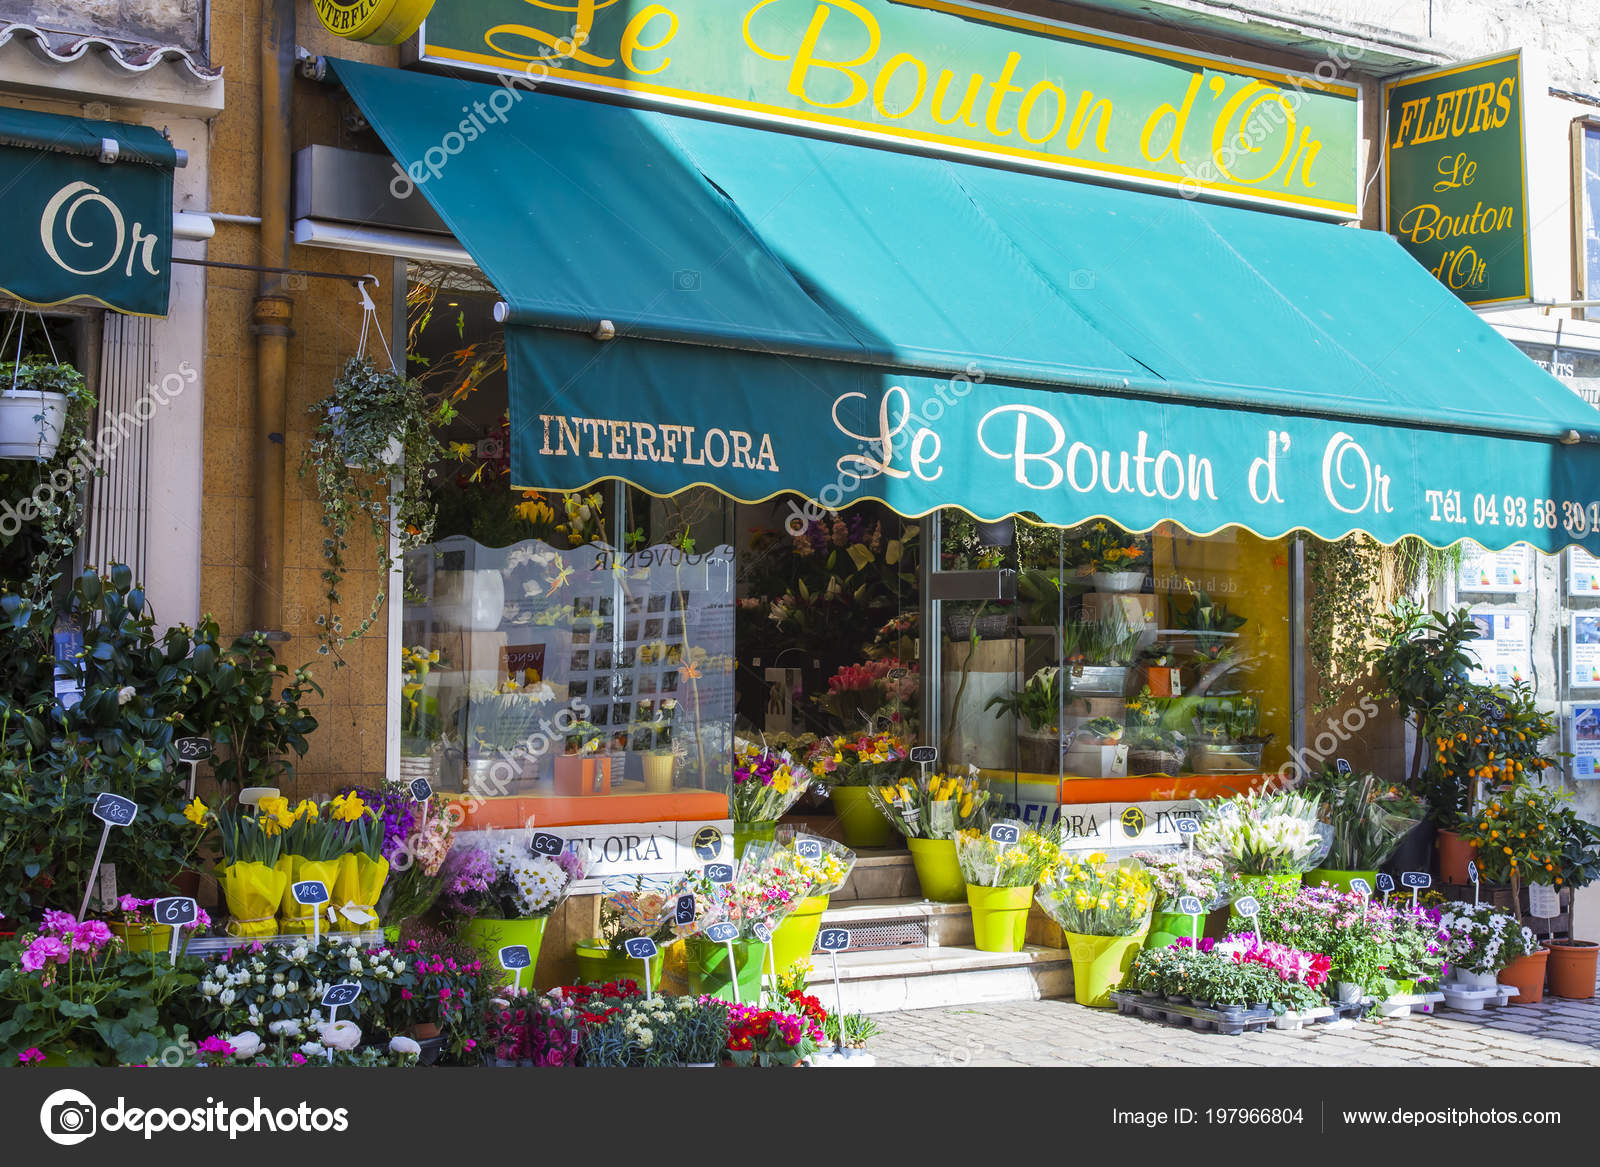 Vence france march 2018 street show window beautiful flower shop vence france march 2018 street show window beautiful flower shop stock photo izmirmasajfo